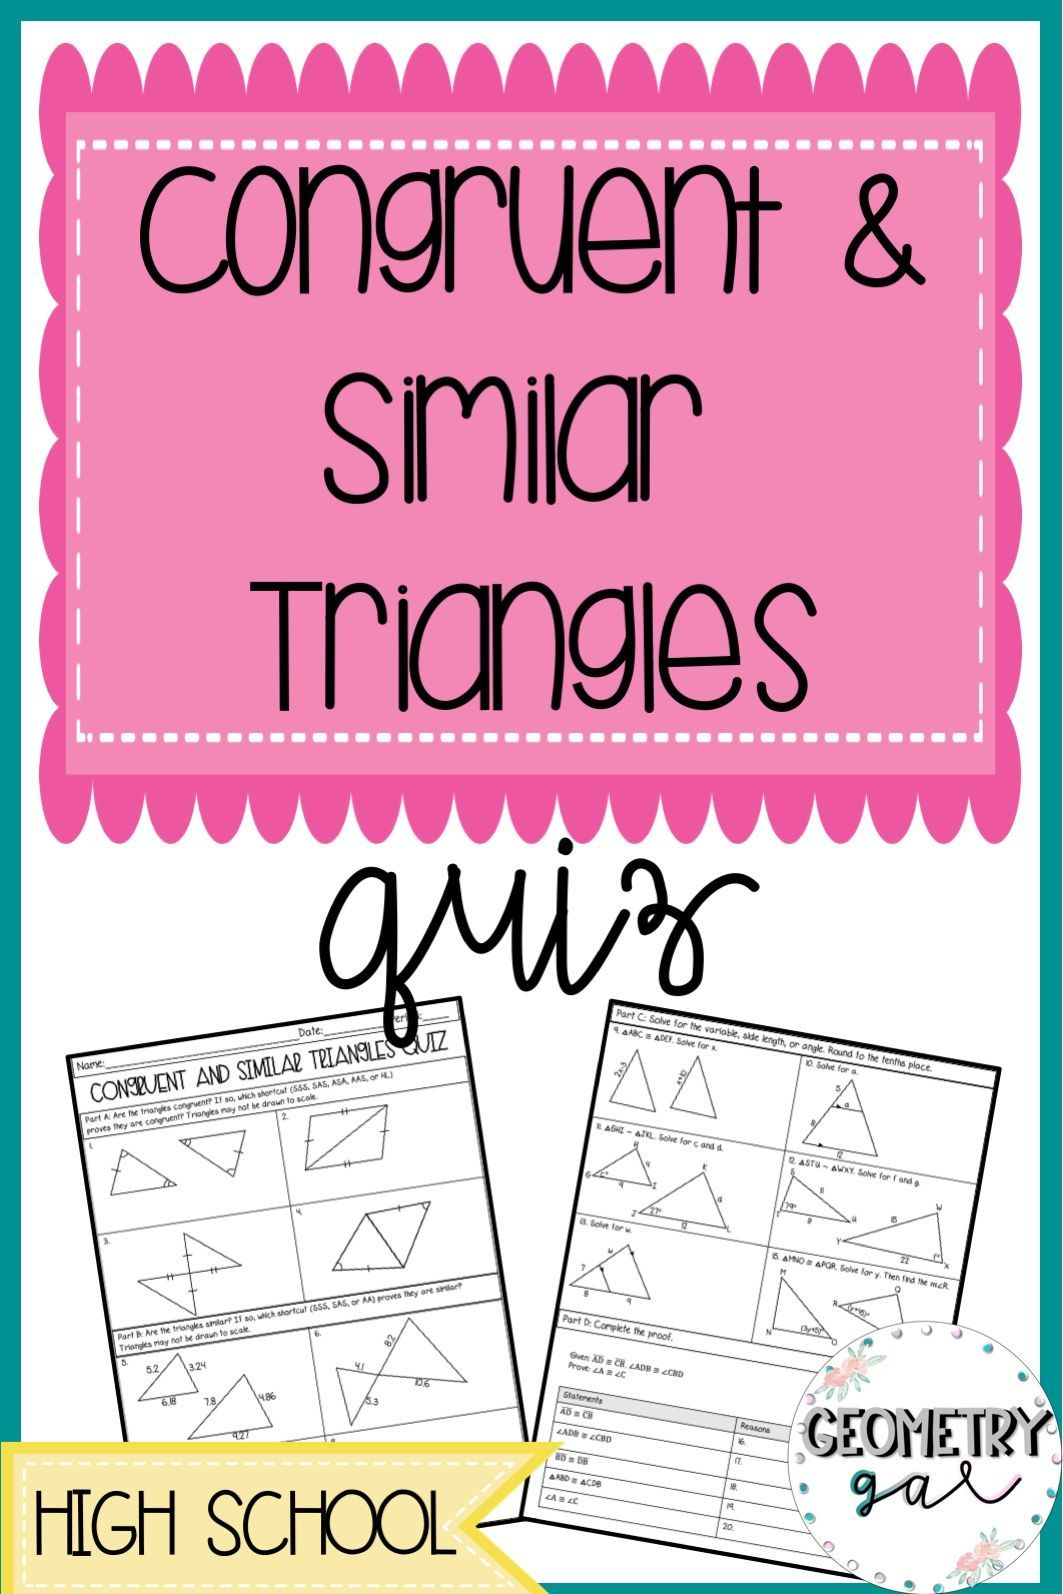 A Quiz Over Congruent And Similar Triangles That Is Perfect For High School Geometry A Grea Geometry High School High School Math Activities Similar Triangles